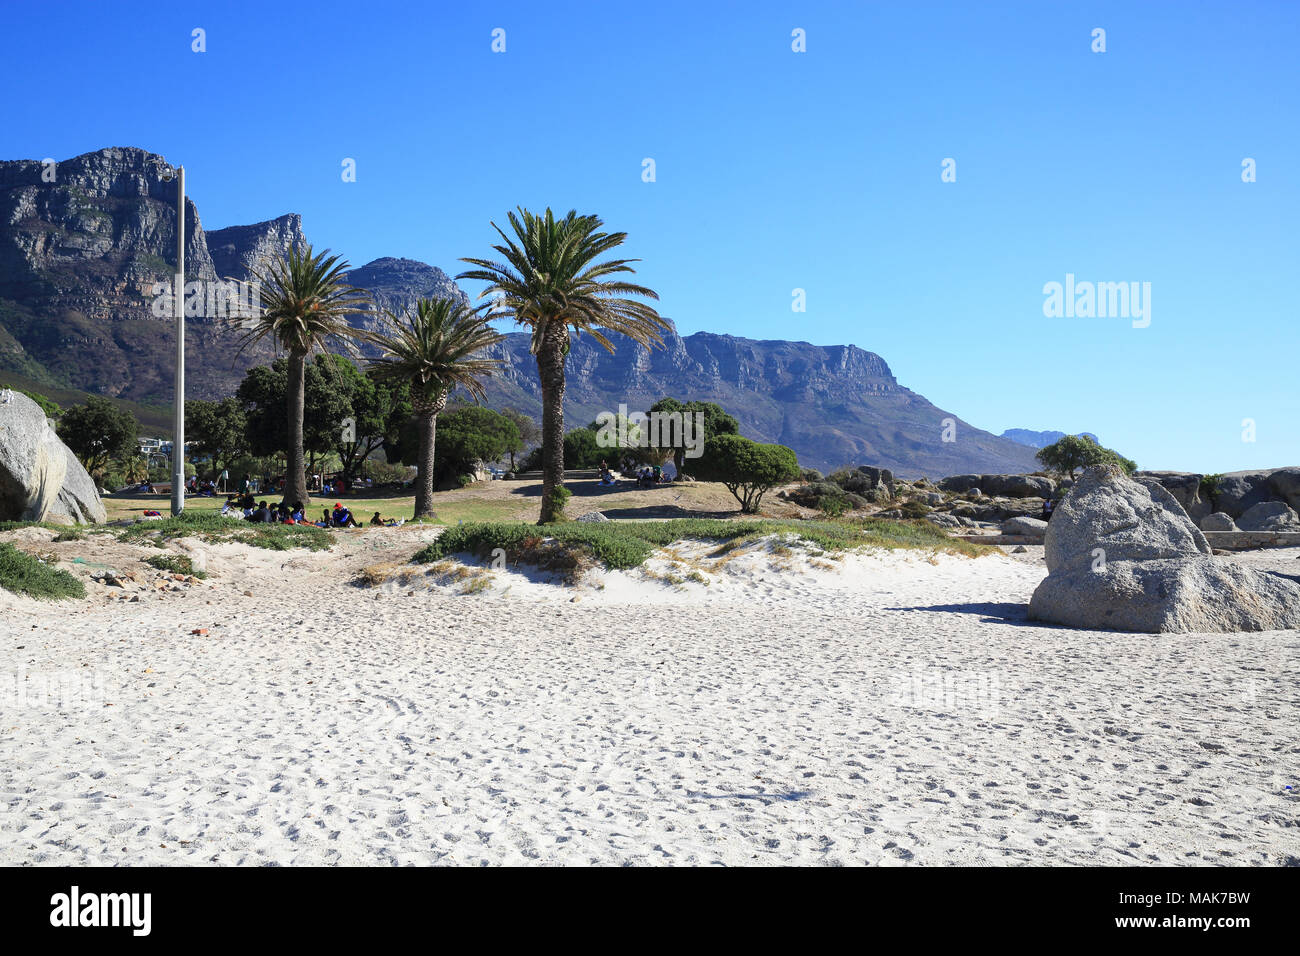 The Twelve Apostles Mountain range beyond the white sands of upmarket Camps Bay, in Cape Town, South Africa - Stock Image